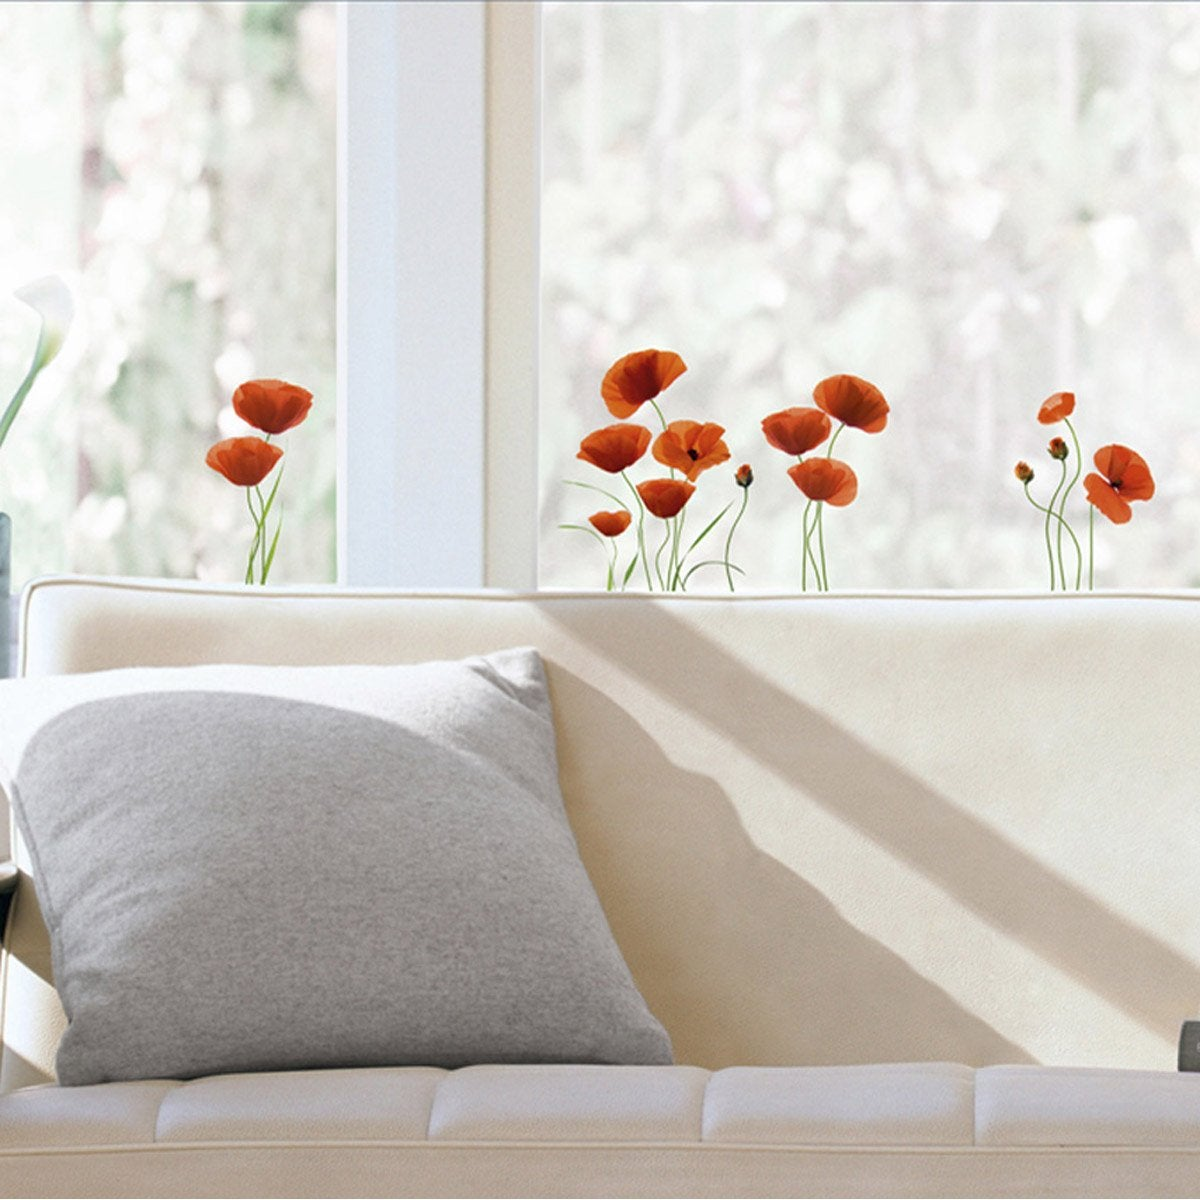 Sticker coquelicots 23 5 cm x 67 cm leroy merlin - Stickers leroy merlin ...